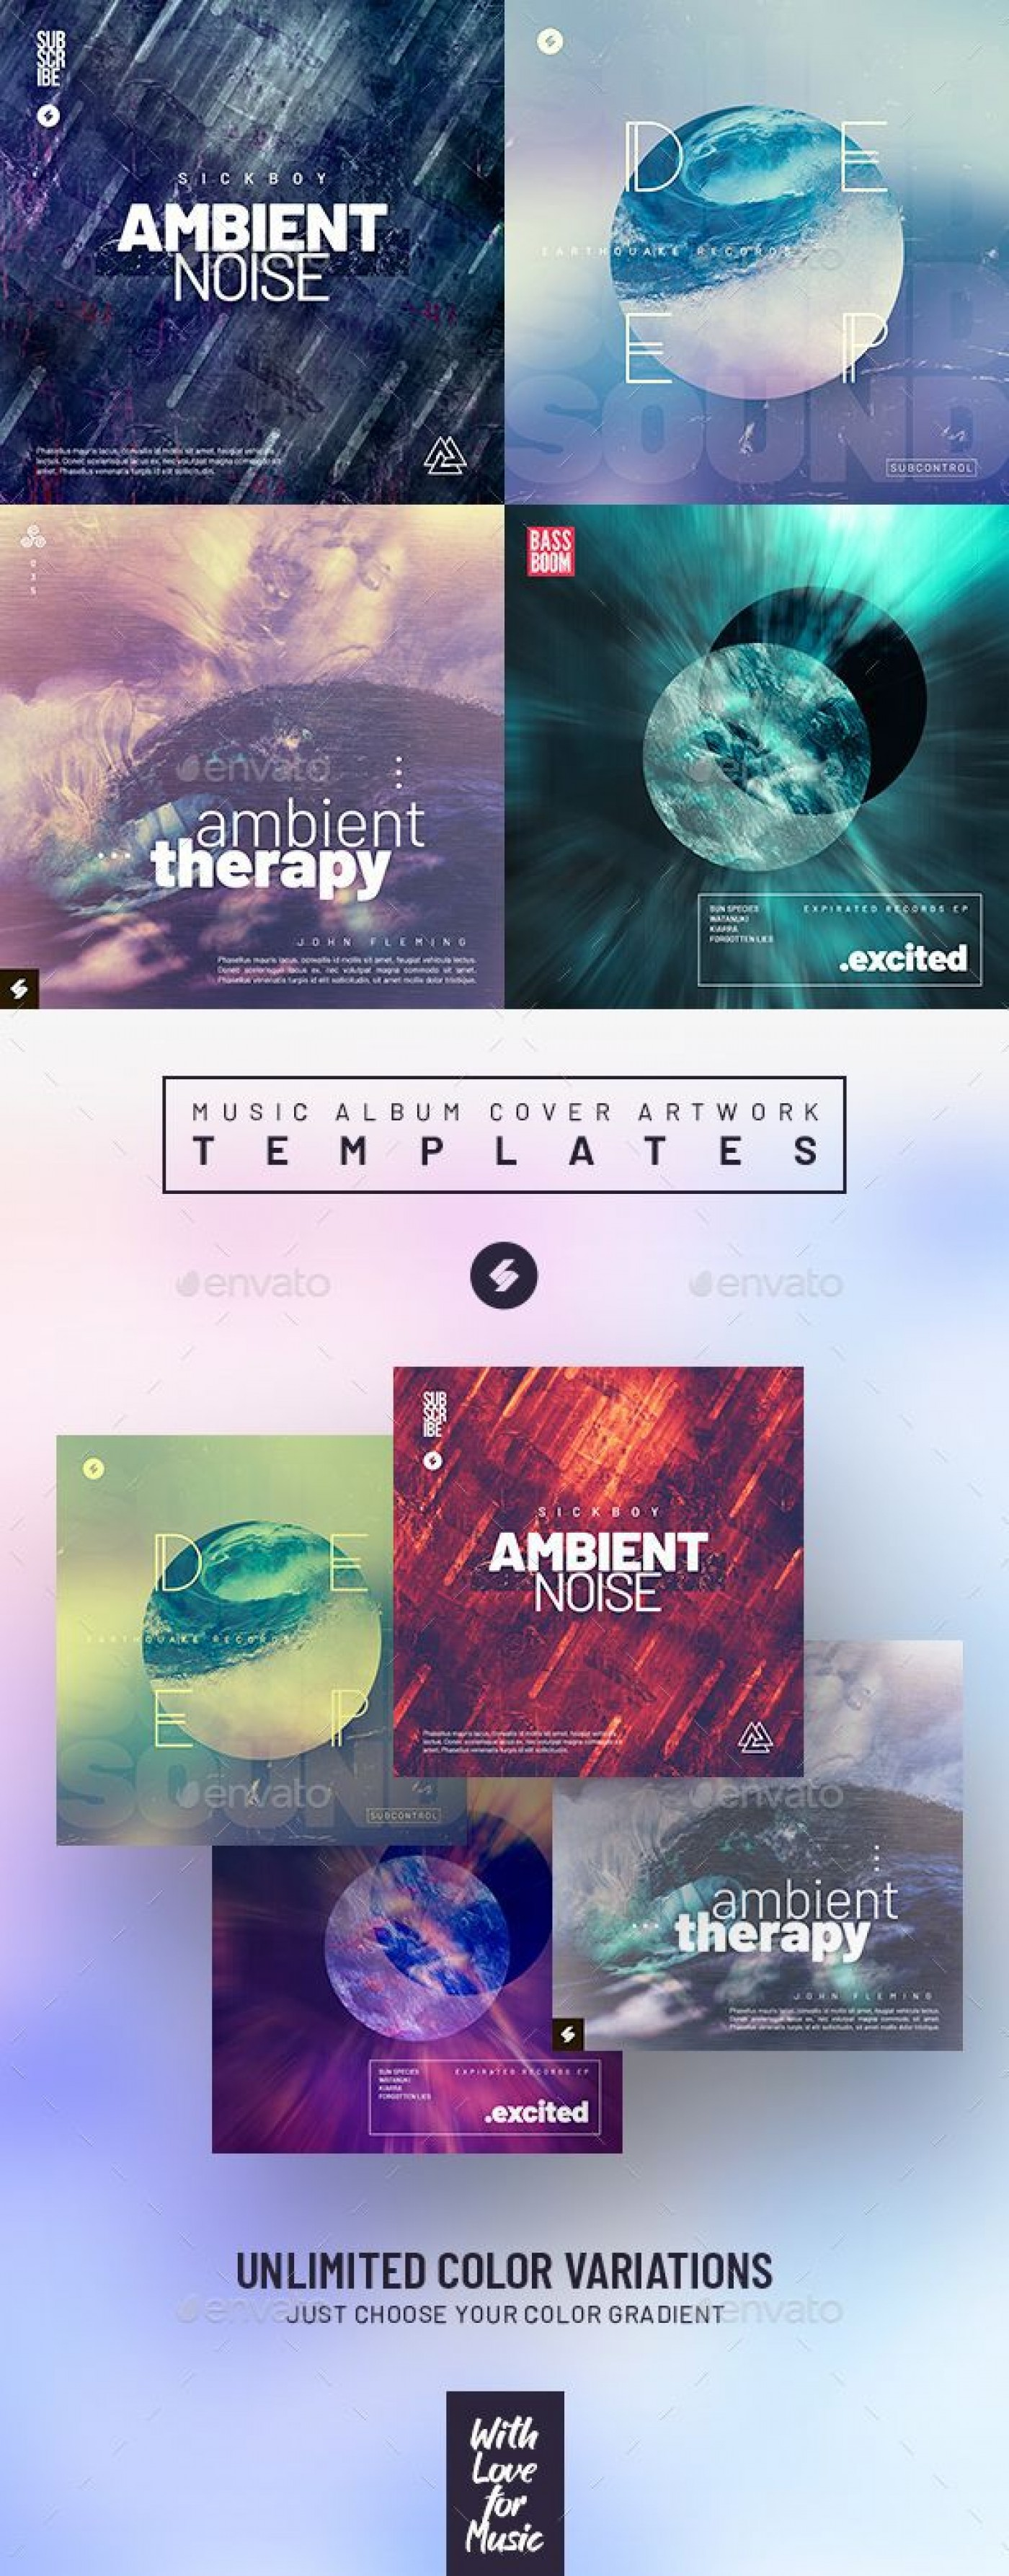 000 Astounding Music Cd Cover Design Template Free Download Photo 1400